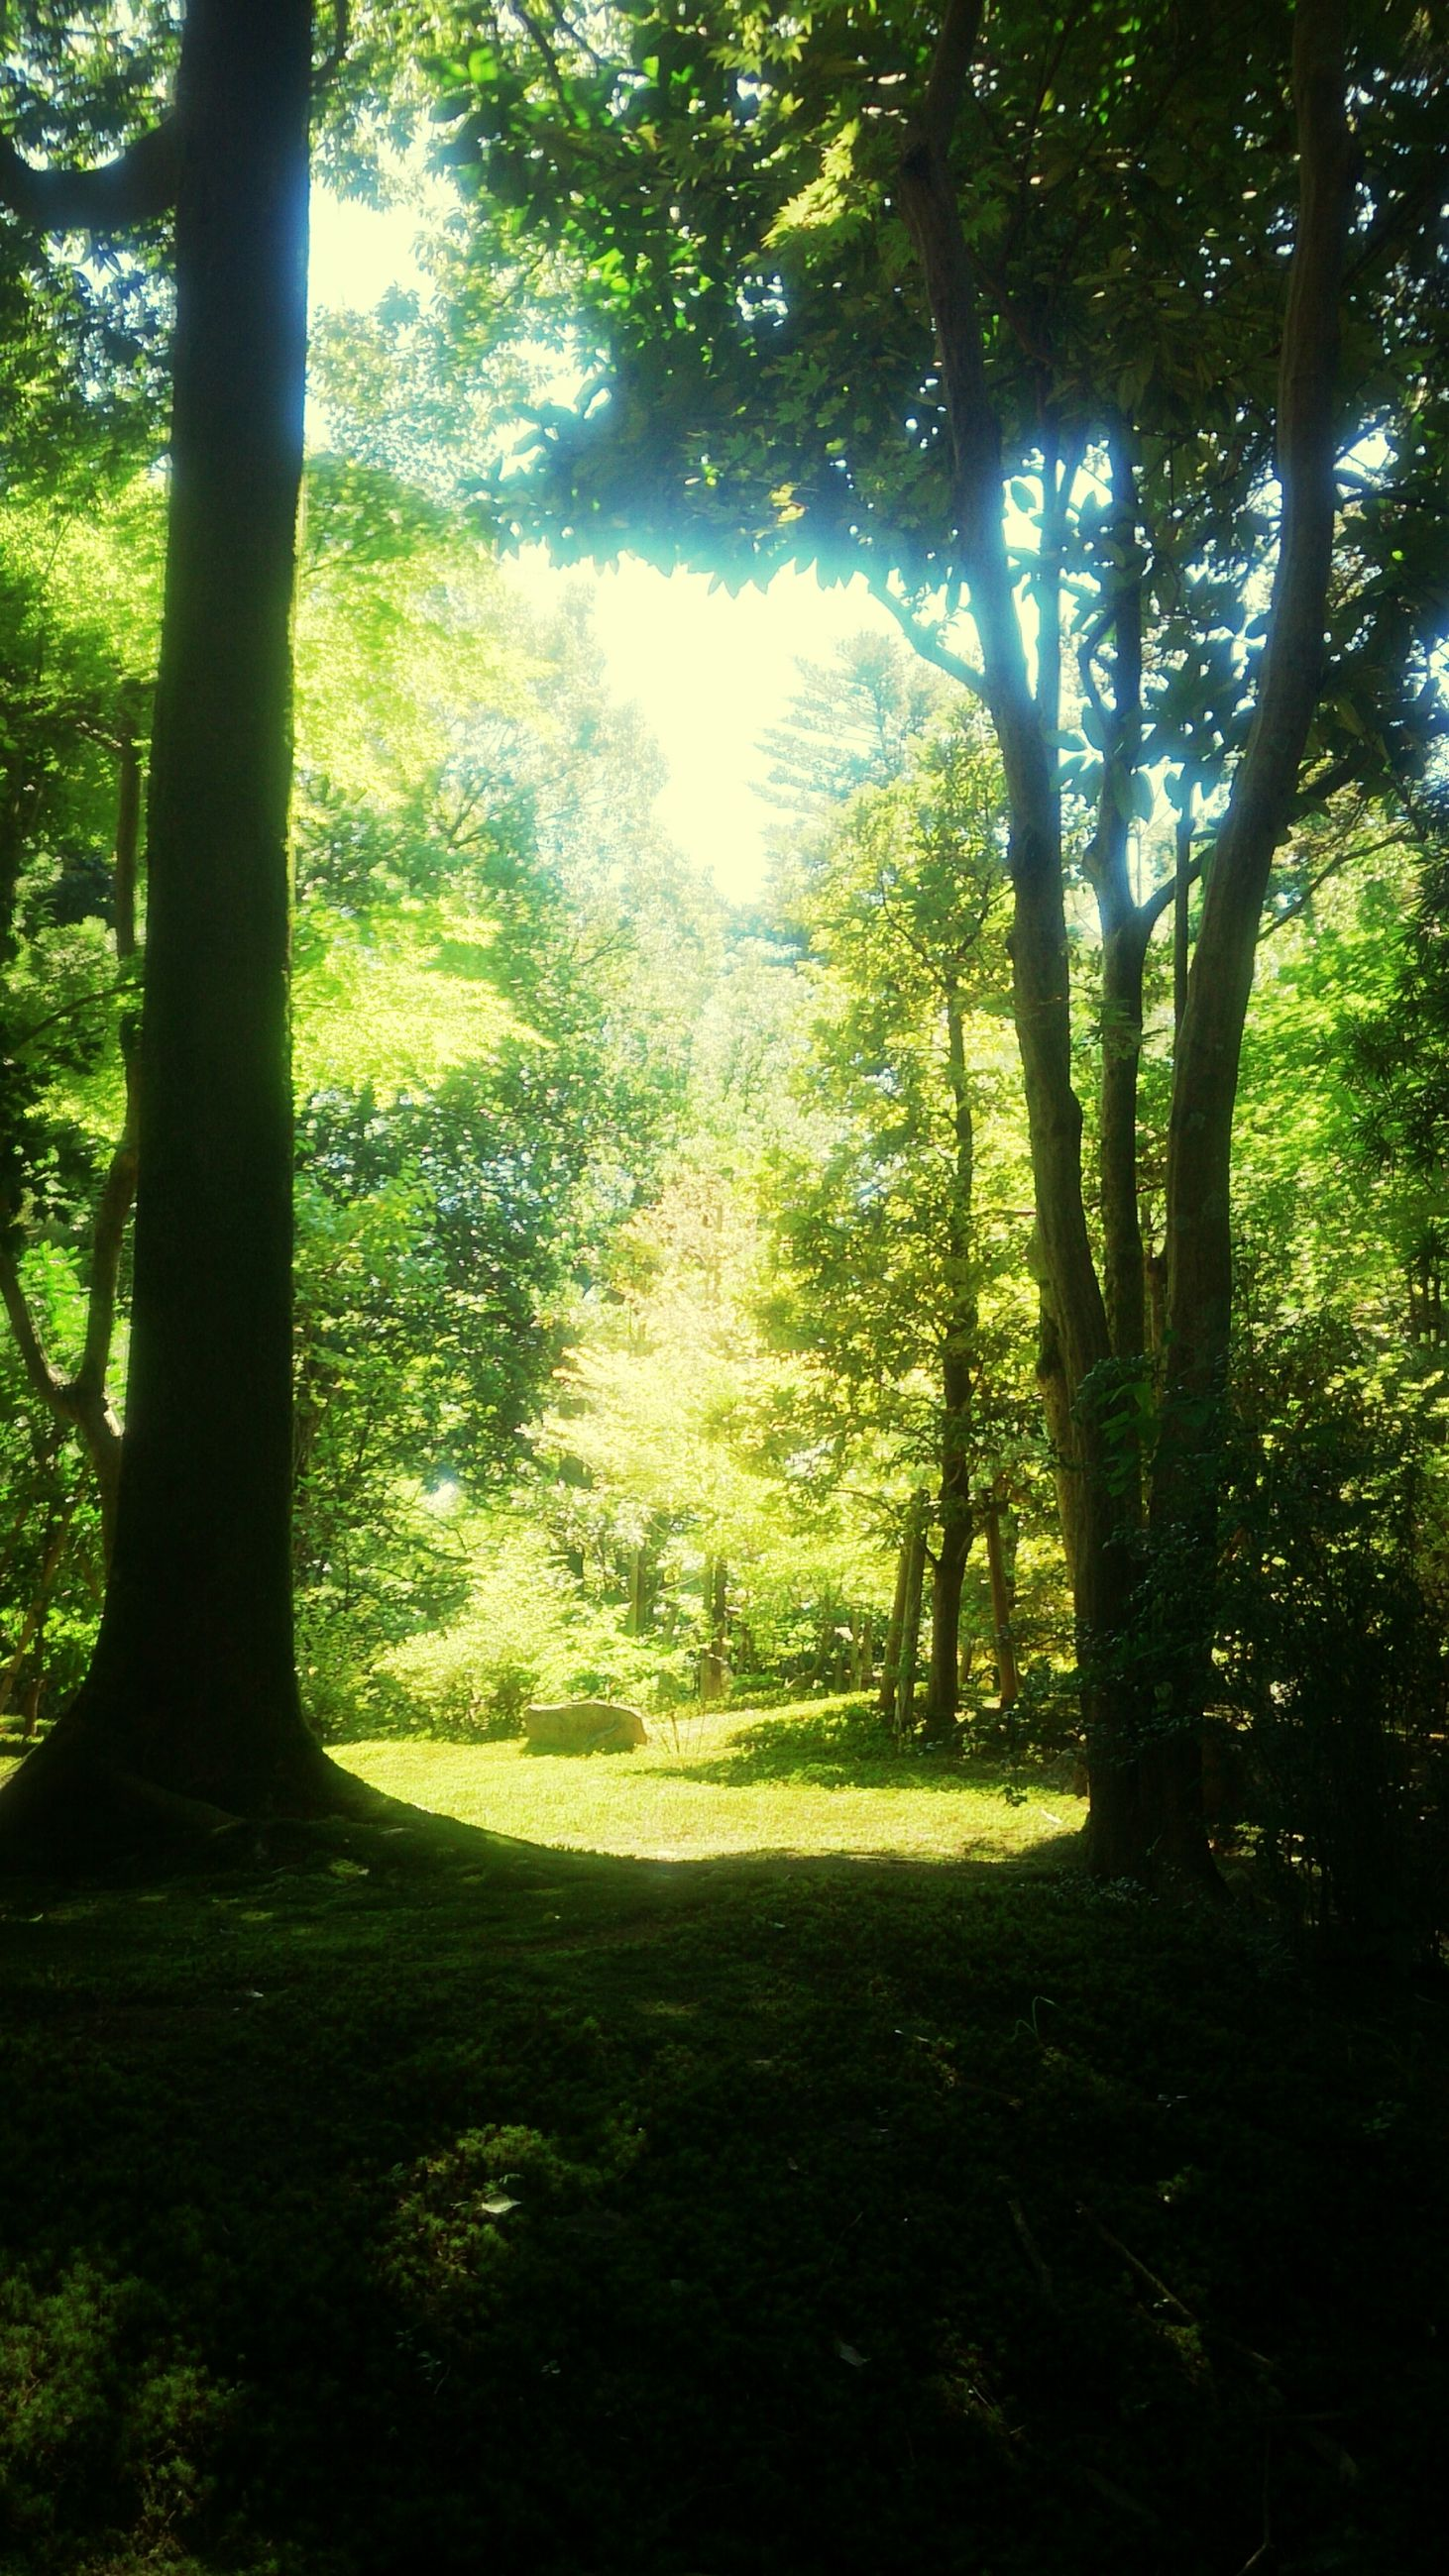 tree, tranquility, tree trunk, tranquil scene, growth, forest, nature, beauty in nature, scenics, sunlight, woodland, landscape, green color, branch, non-urban scene, shadow, idyllic, grass, day, lush foliage